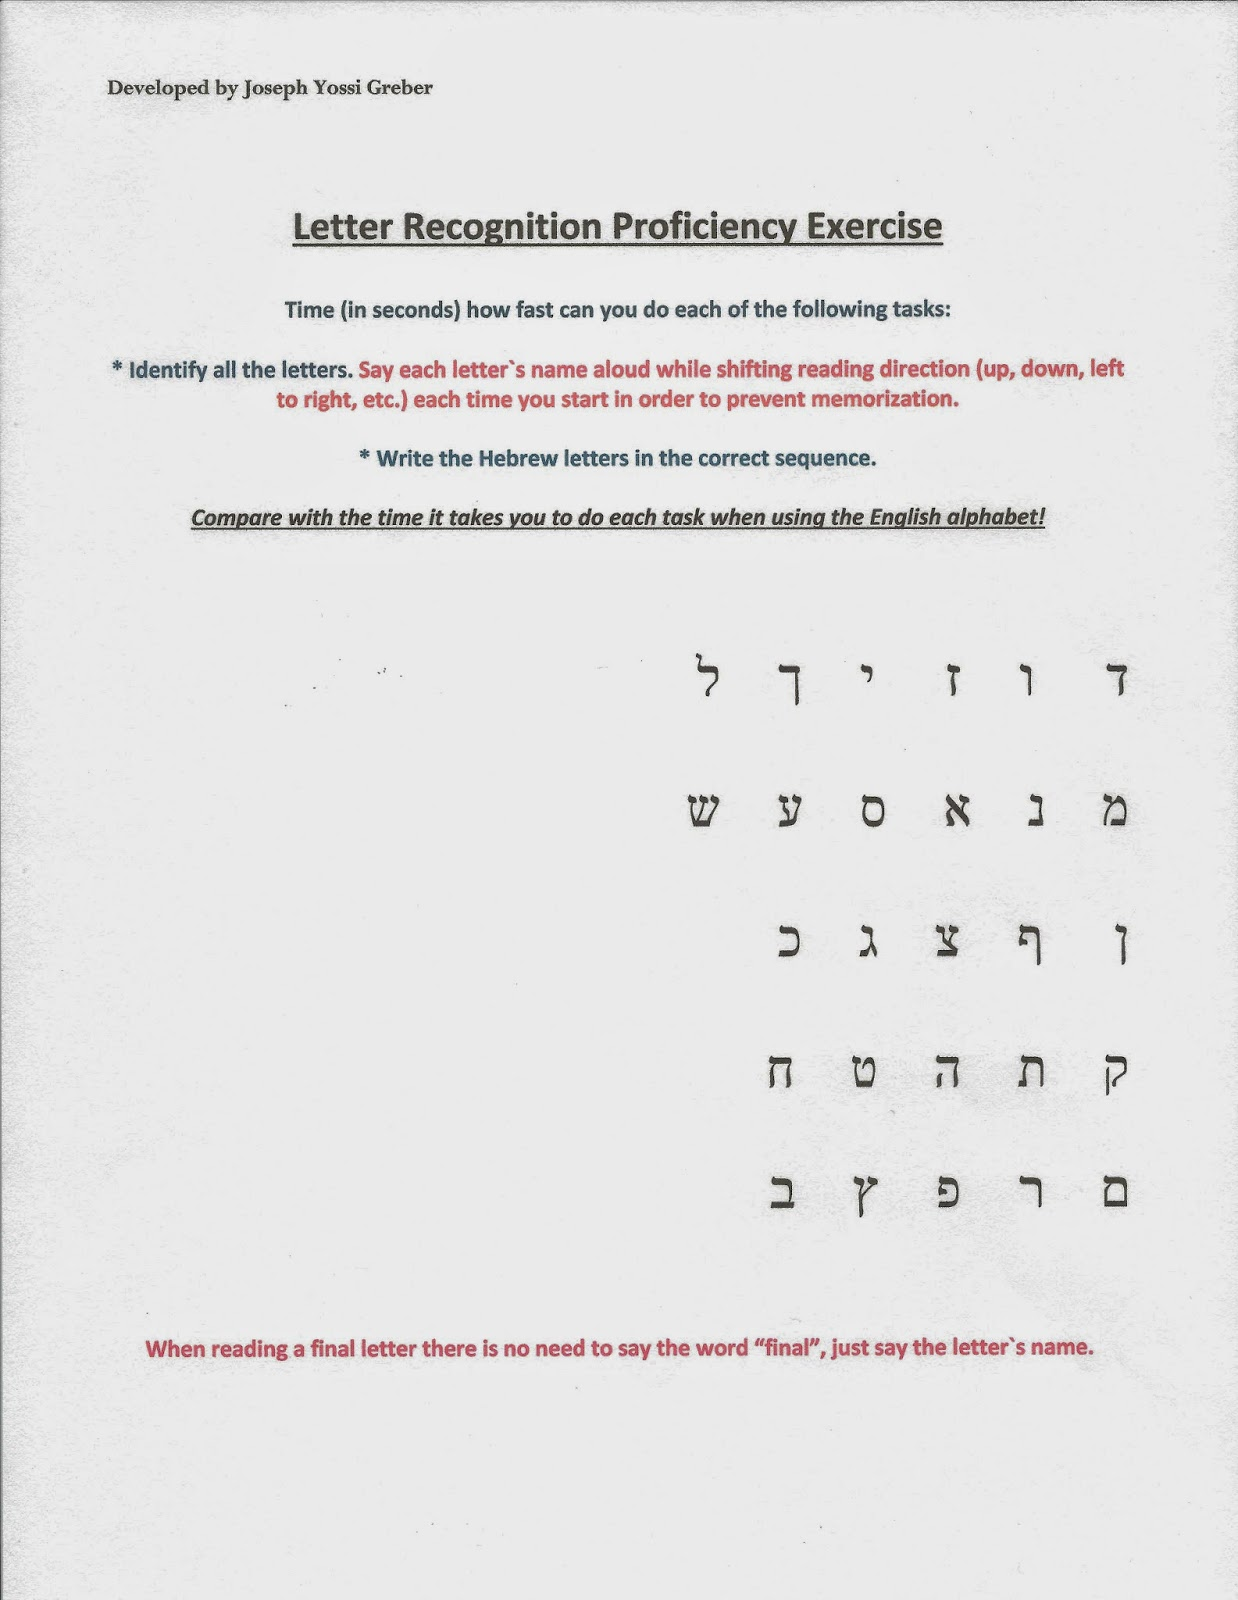 hebrew 2 u roots and cultural heritage yossi greber letter recognition proficiency exercise